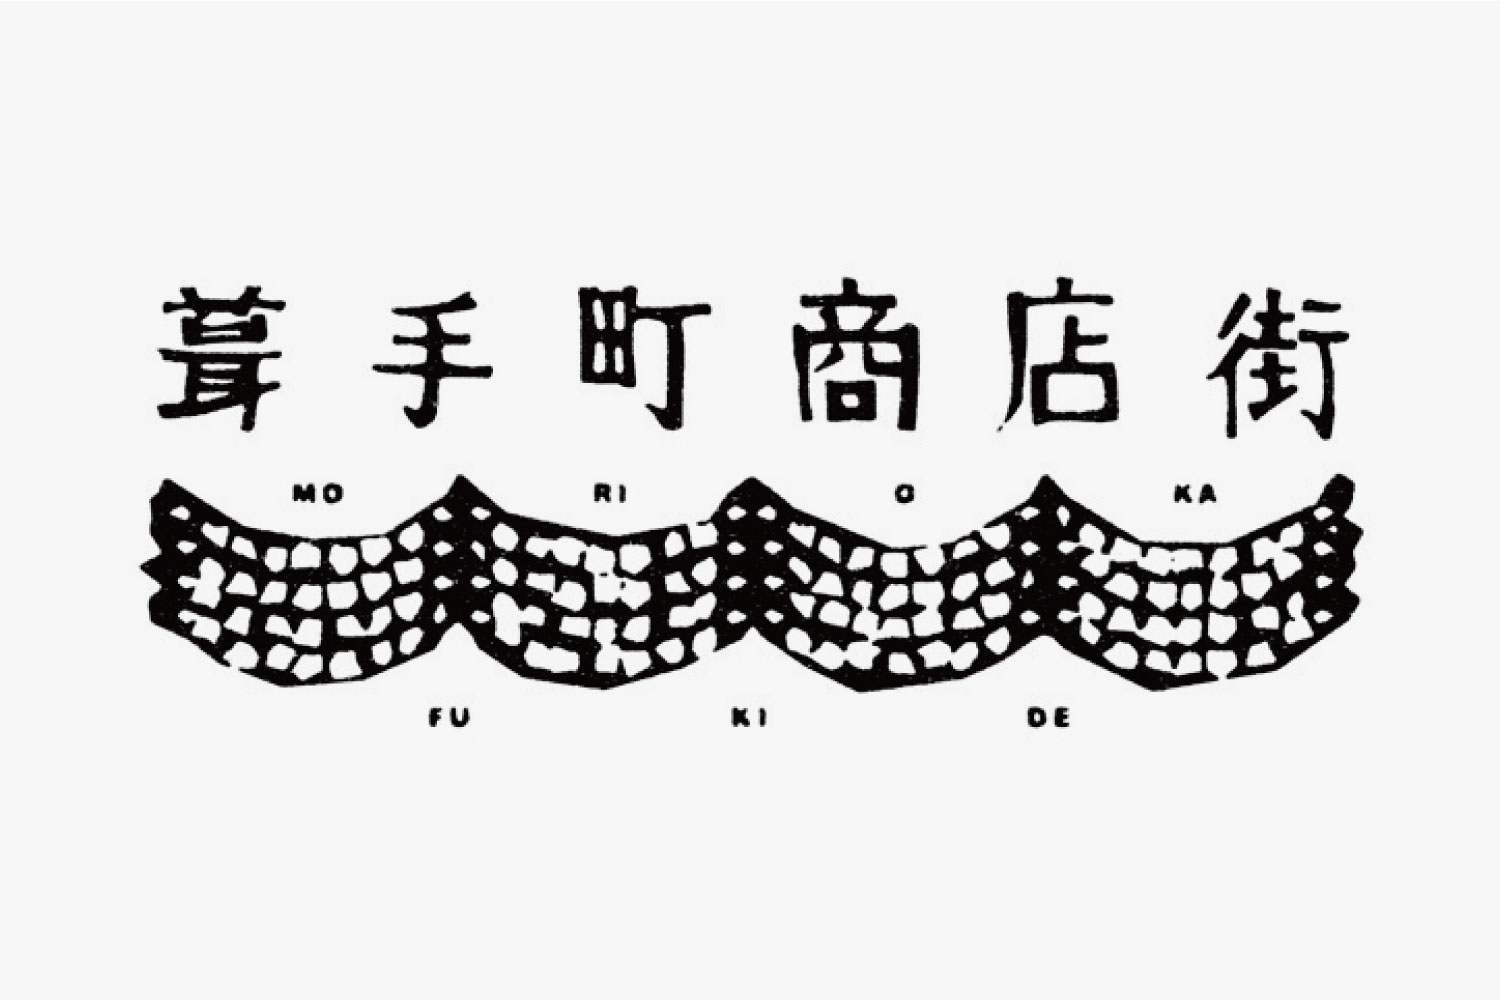 Fukide Shopping street Logotype